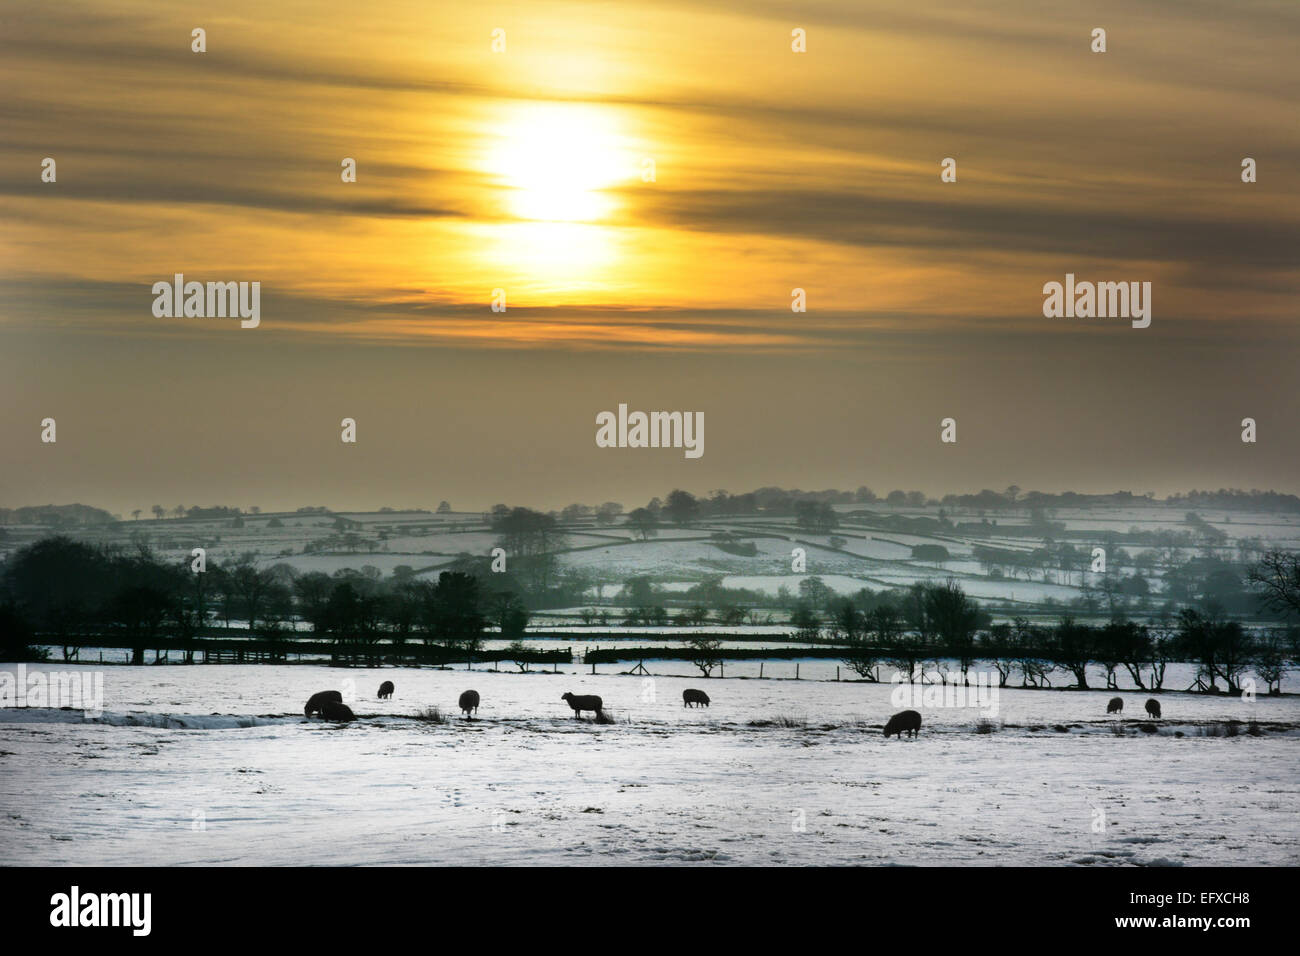 Sheep in a snow covered field against the setting sun at Bottomhouse, Leek, Staffordshire, UK. - Stock Image